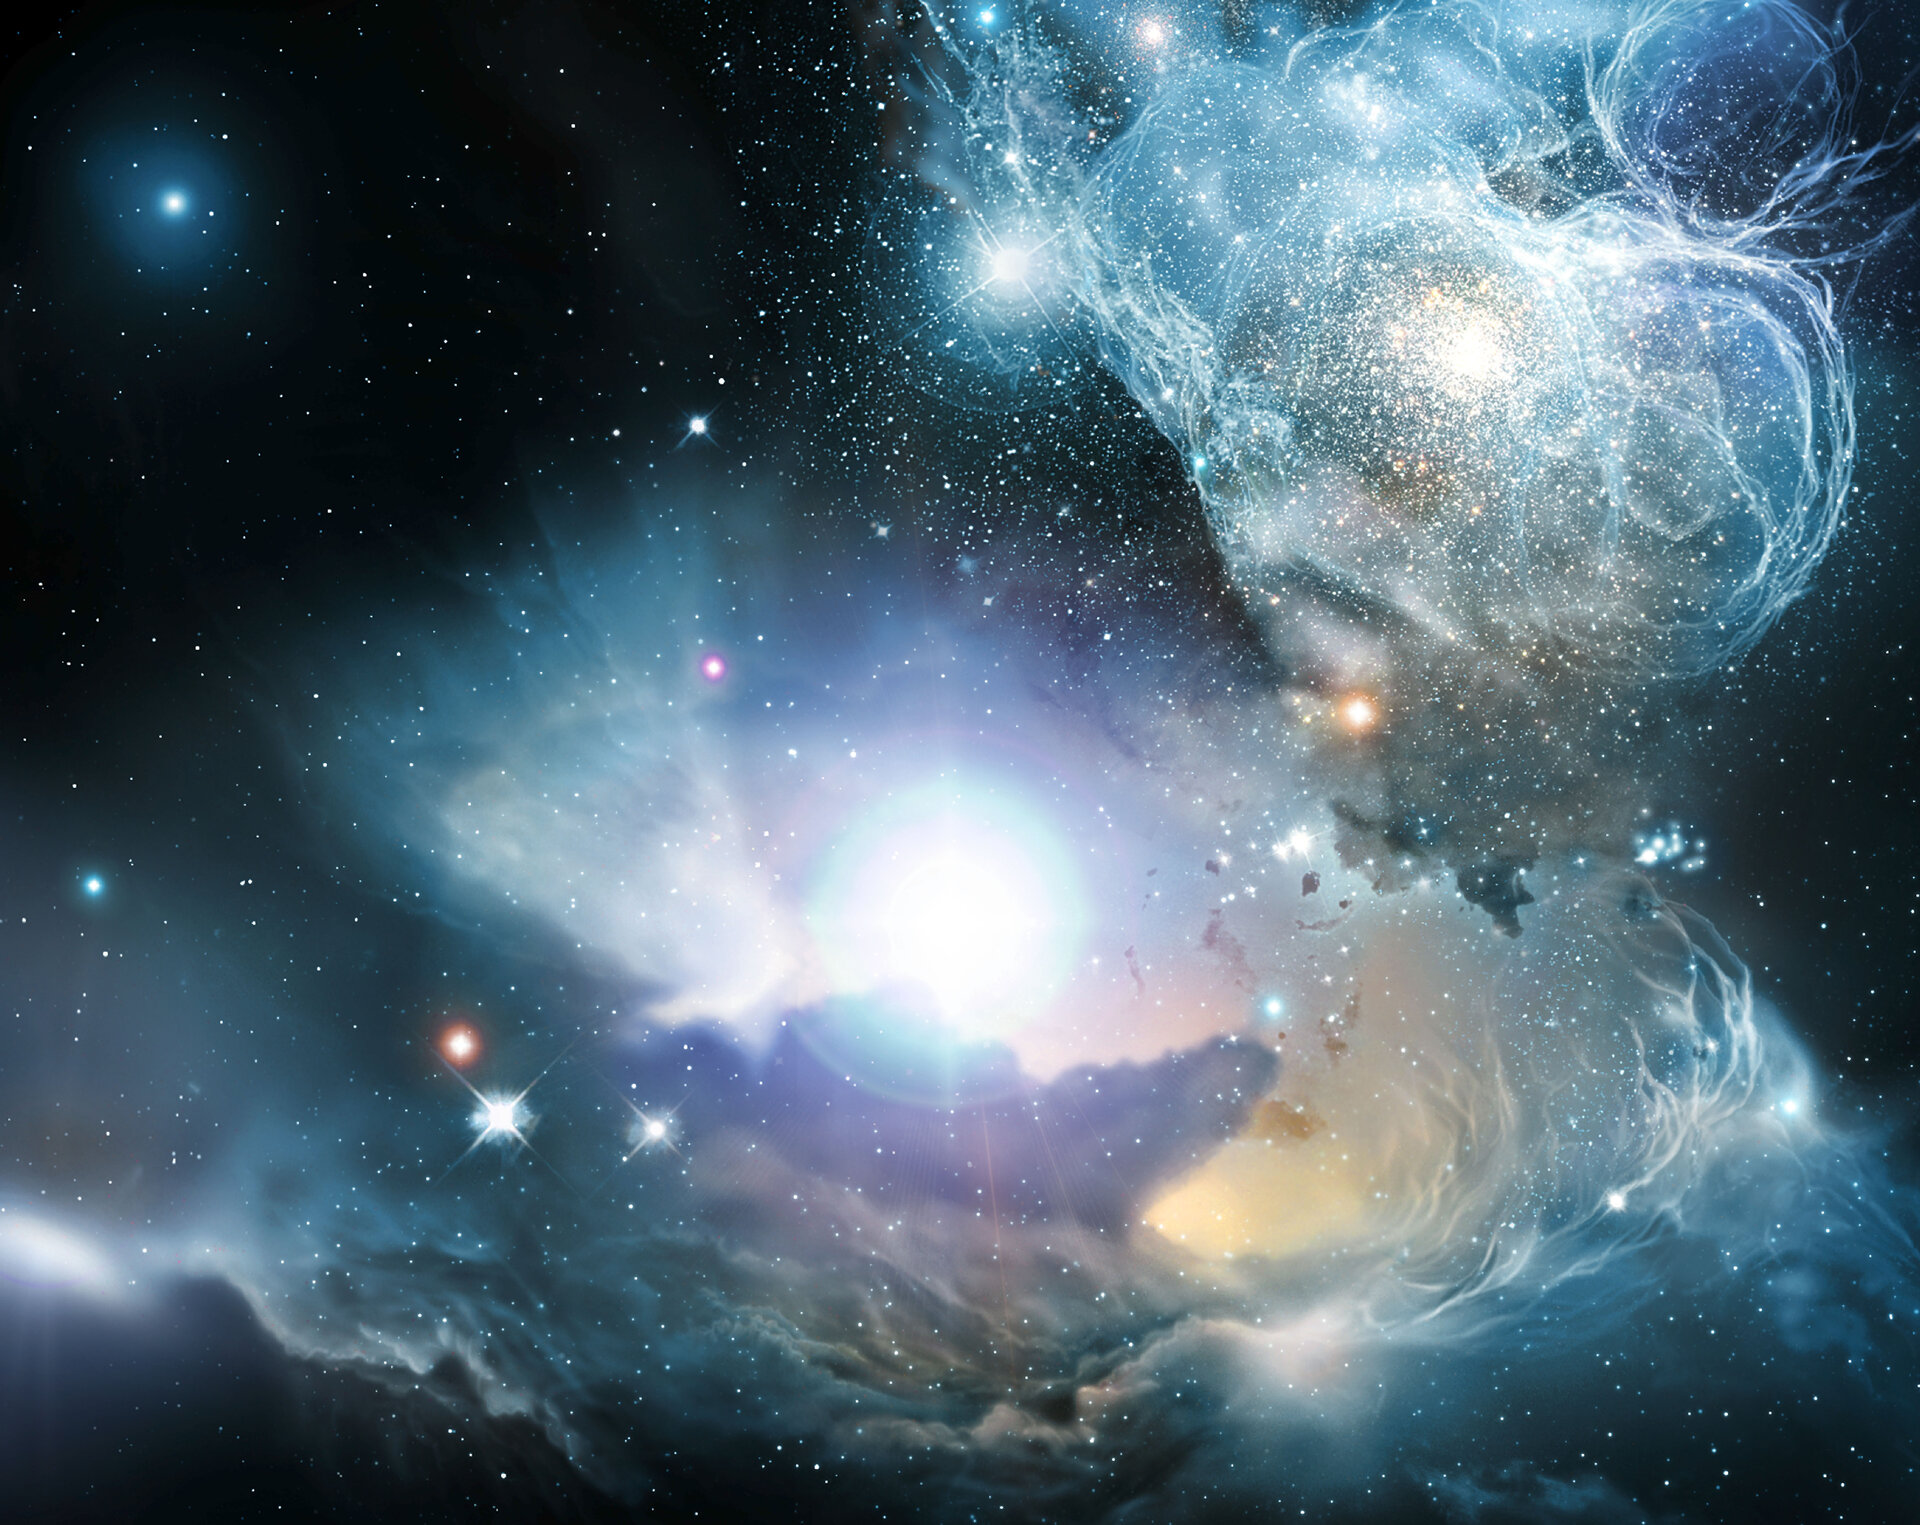 Artist impression of a quasar located in a primeval galaxy, around 900 million years after the Big Bang